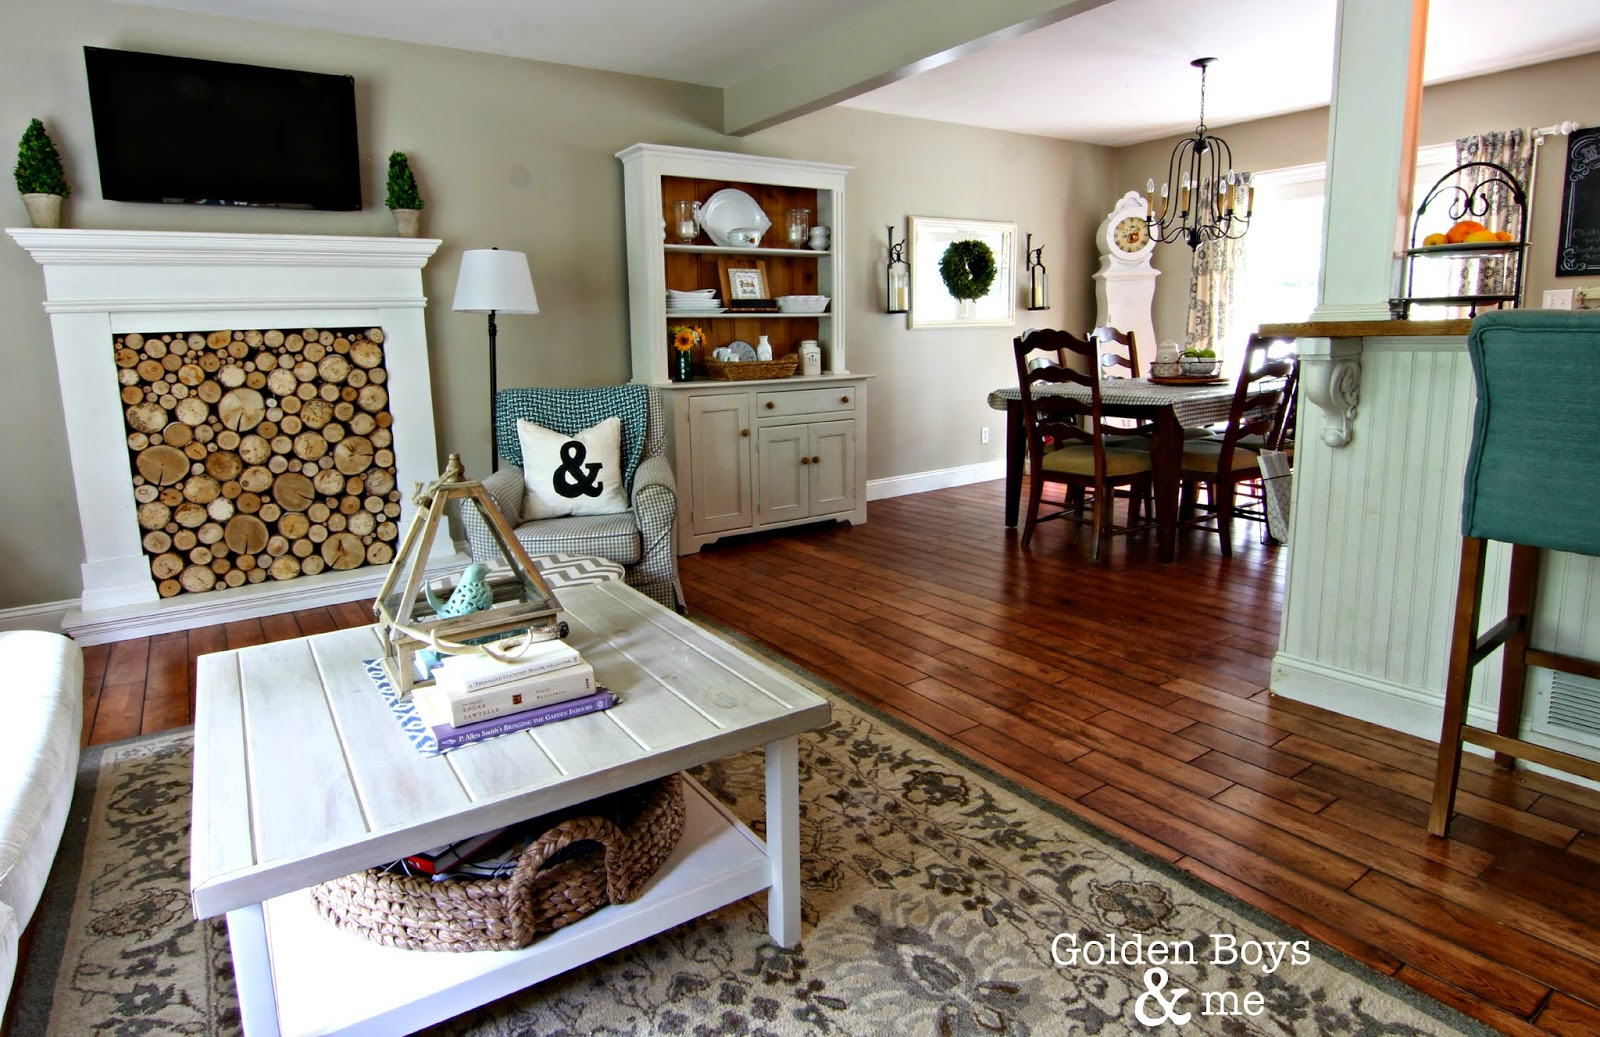 Golden boys and me the painted hutch - Open floor plan living room kitchen dining ...